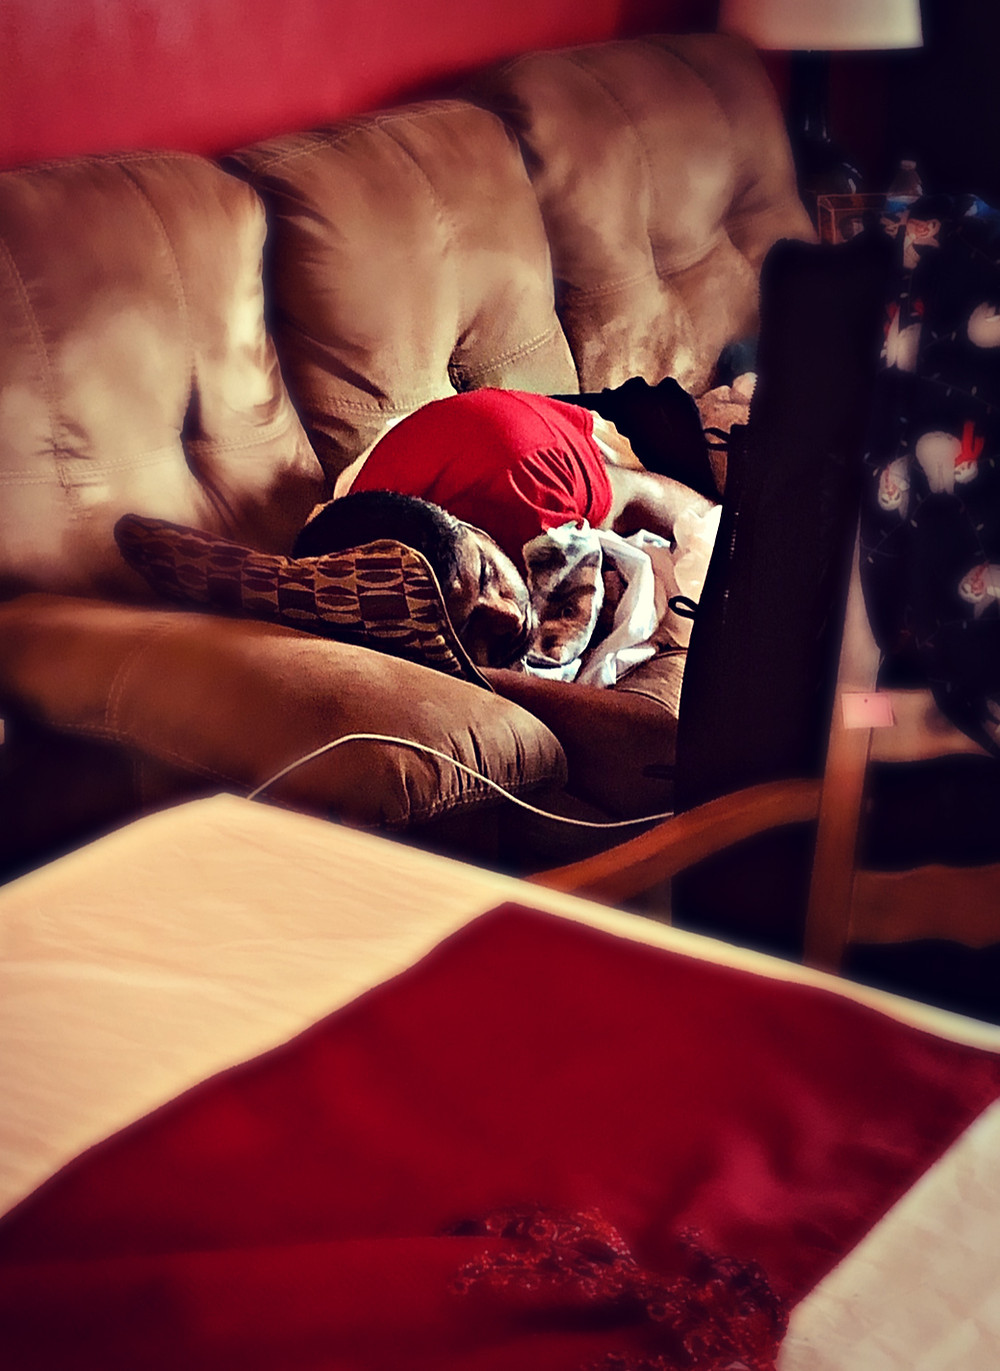 I took this picture of him on Christmas Day after he spent his energy playing the role of Papa Claus.